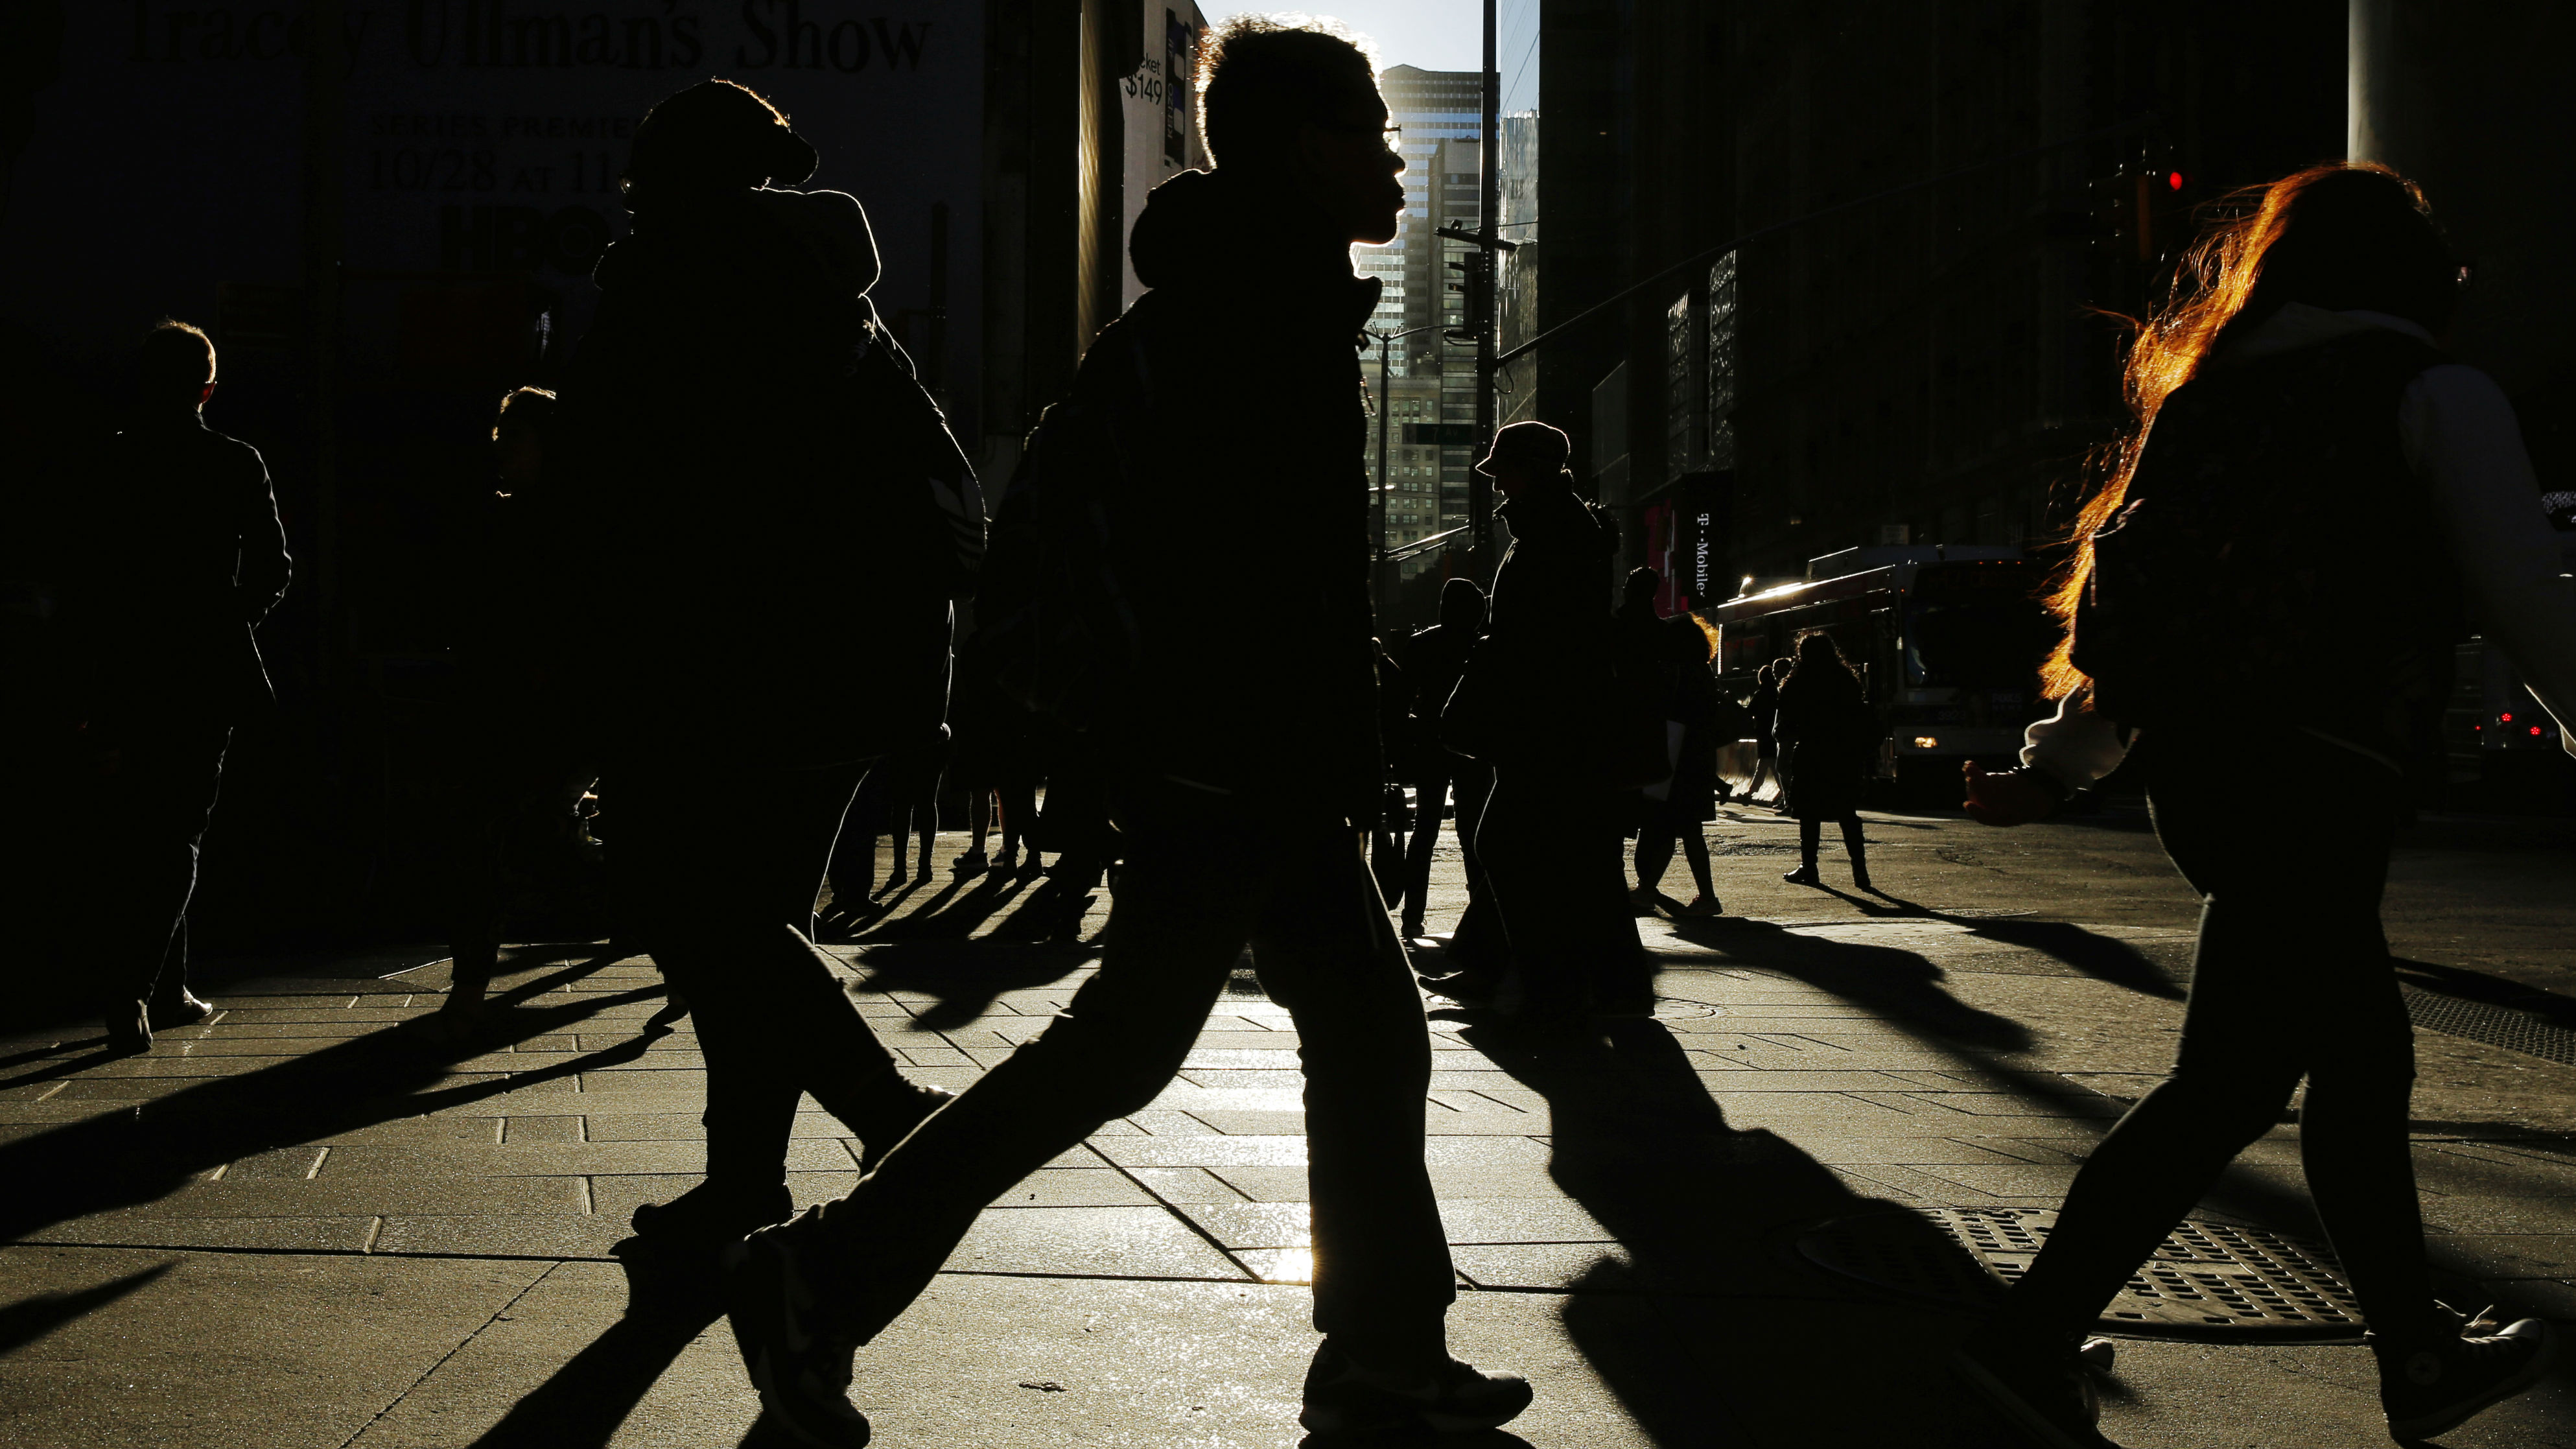 Commuters walk through the early morning sun in New York, U.S.,October 31, 2016